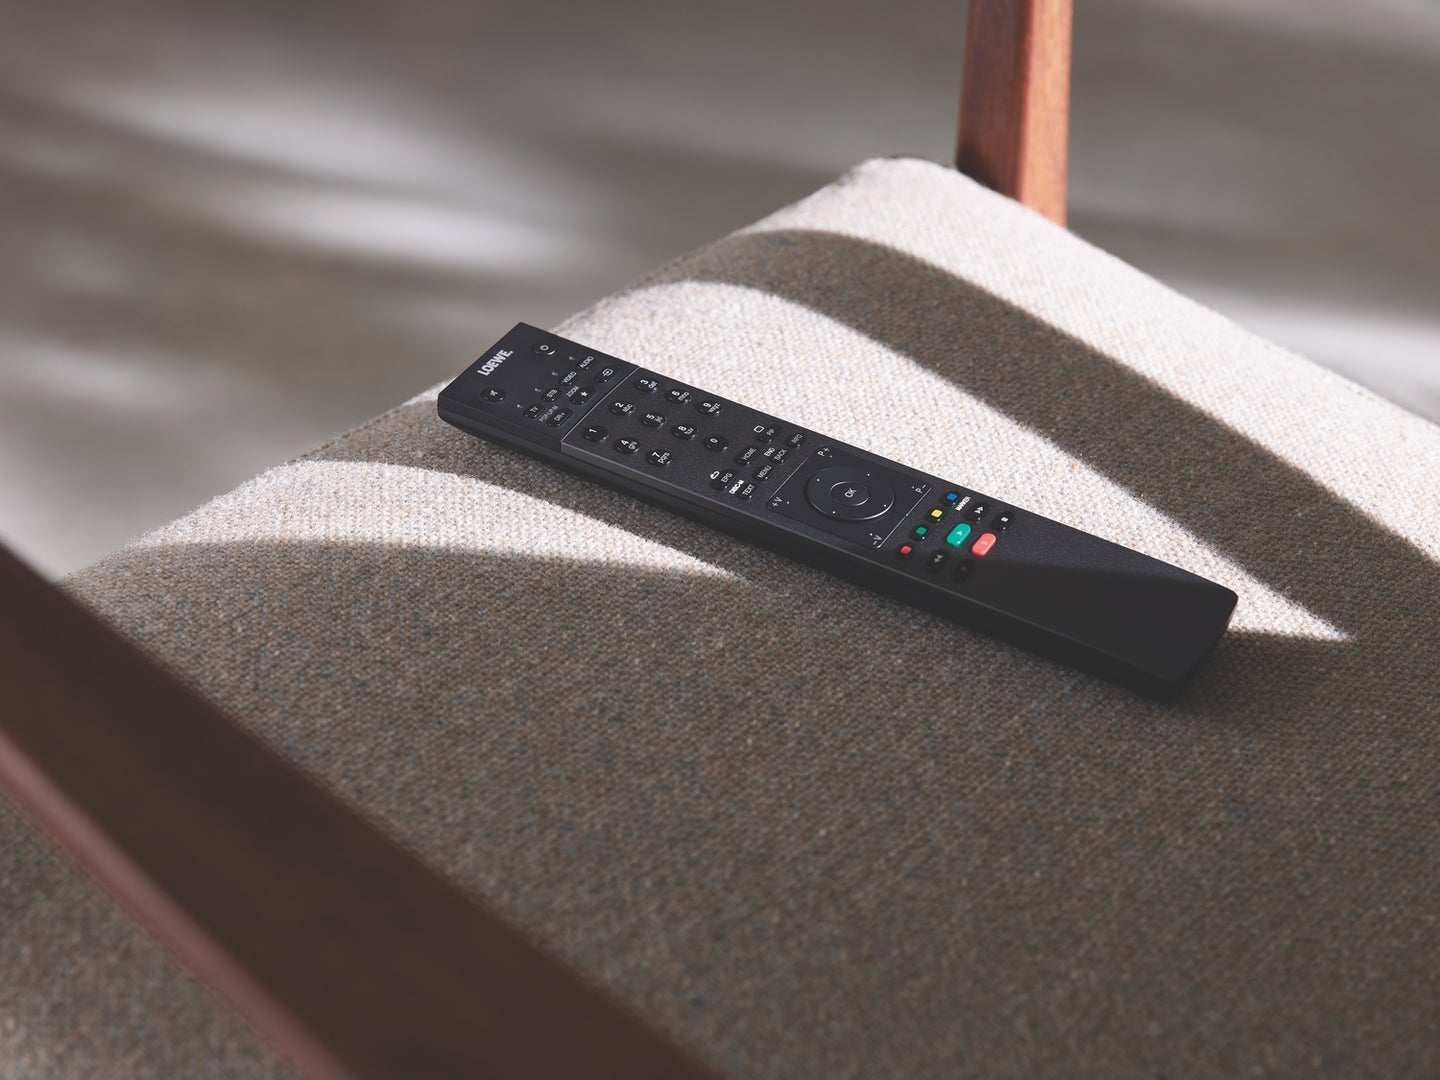 a black TV remote on a gray chair